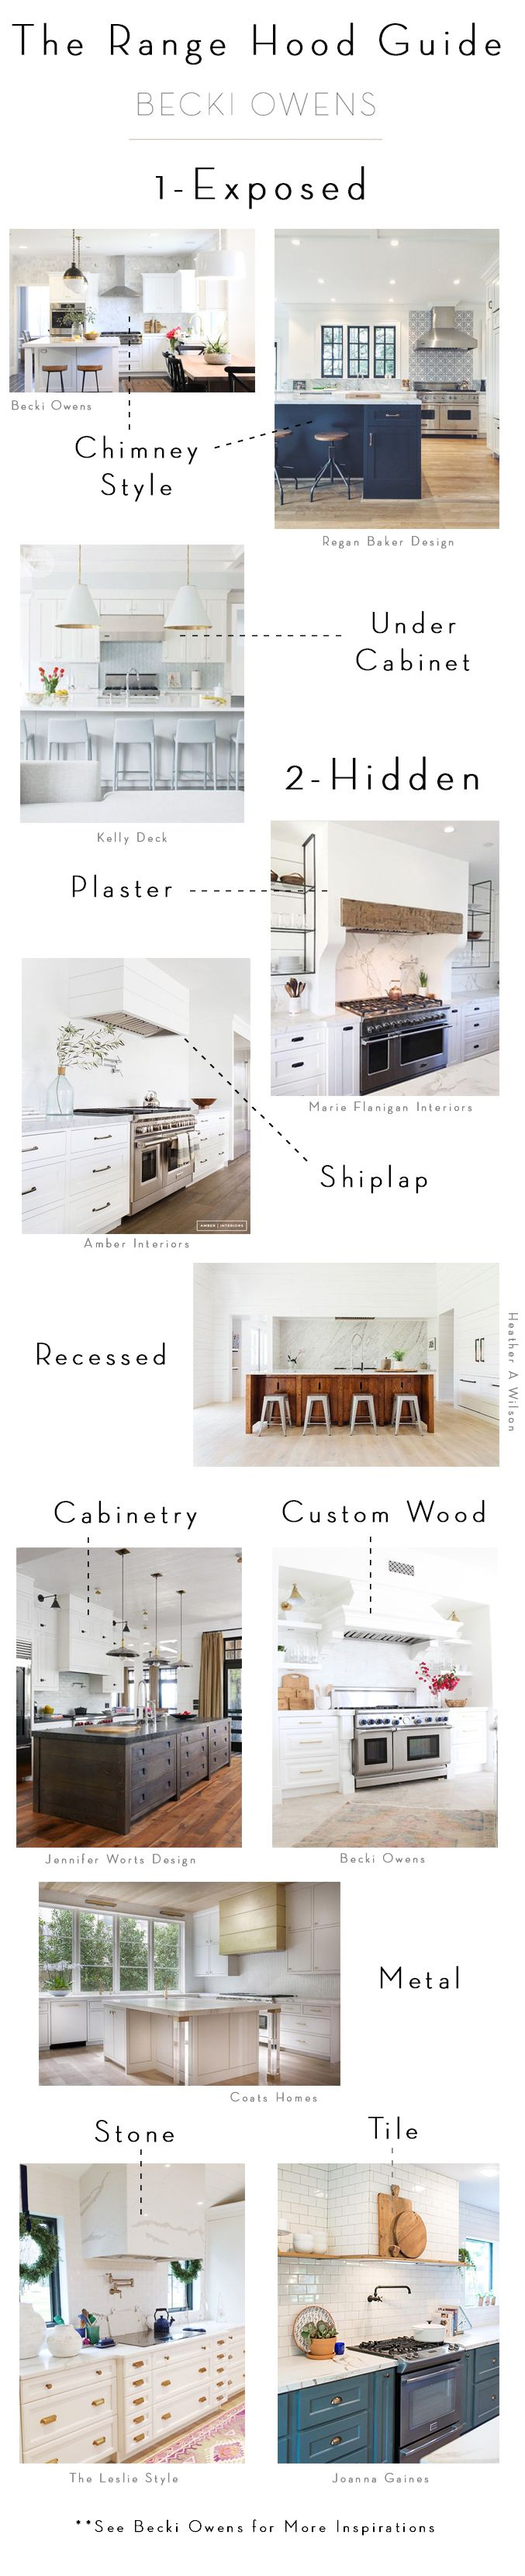 BECKI OWENS-- The Range Hood Guide.  From dramatic statement hoods or those with a simple minimalist design, today I am sharing inspirations for range hood designs you might consider.